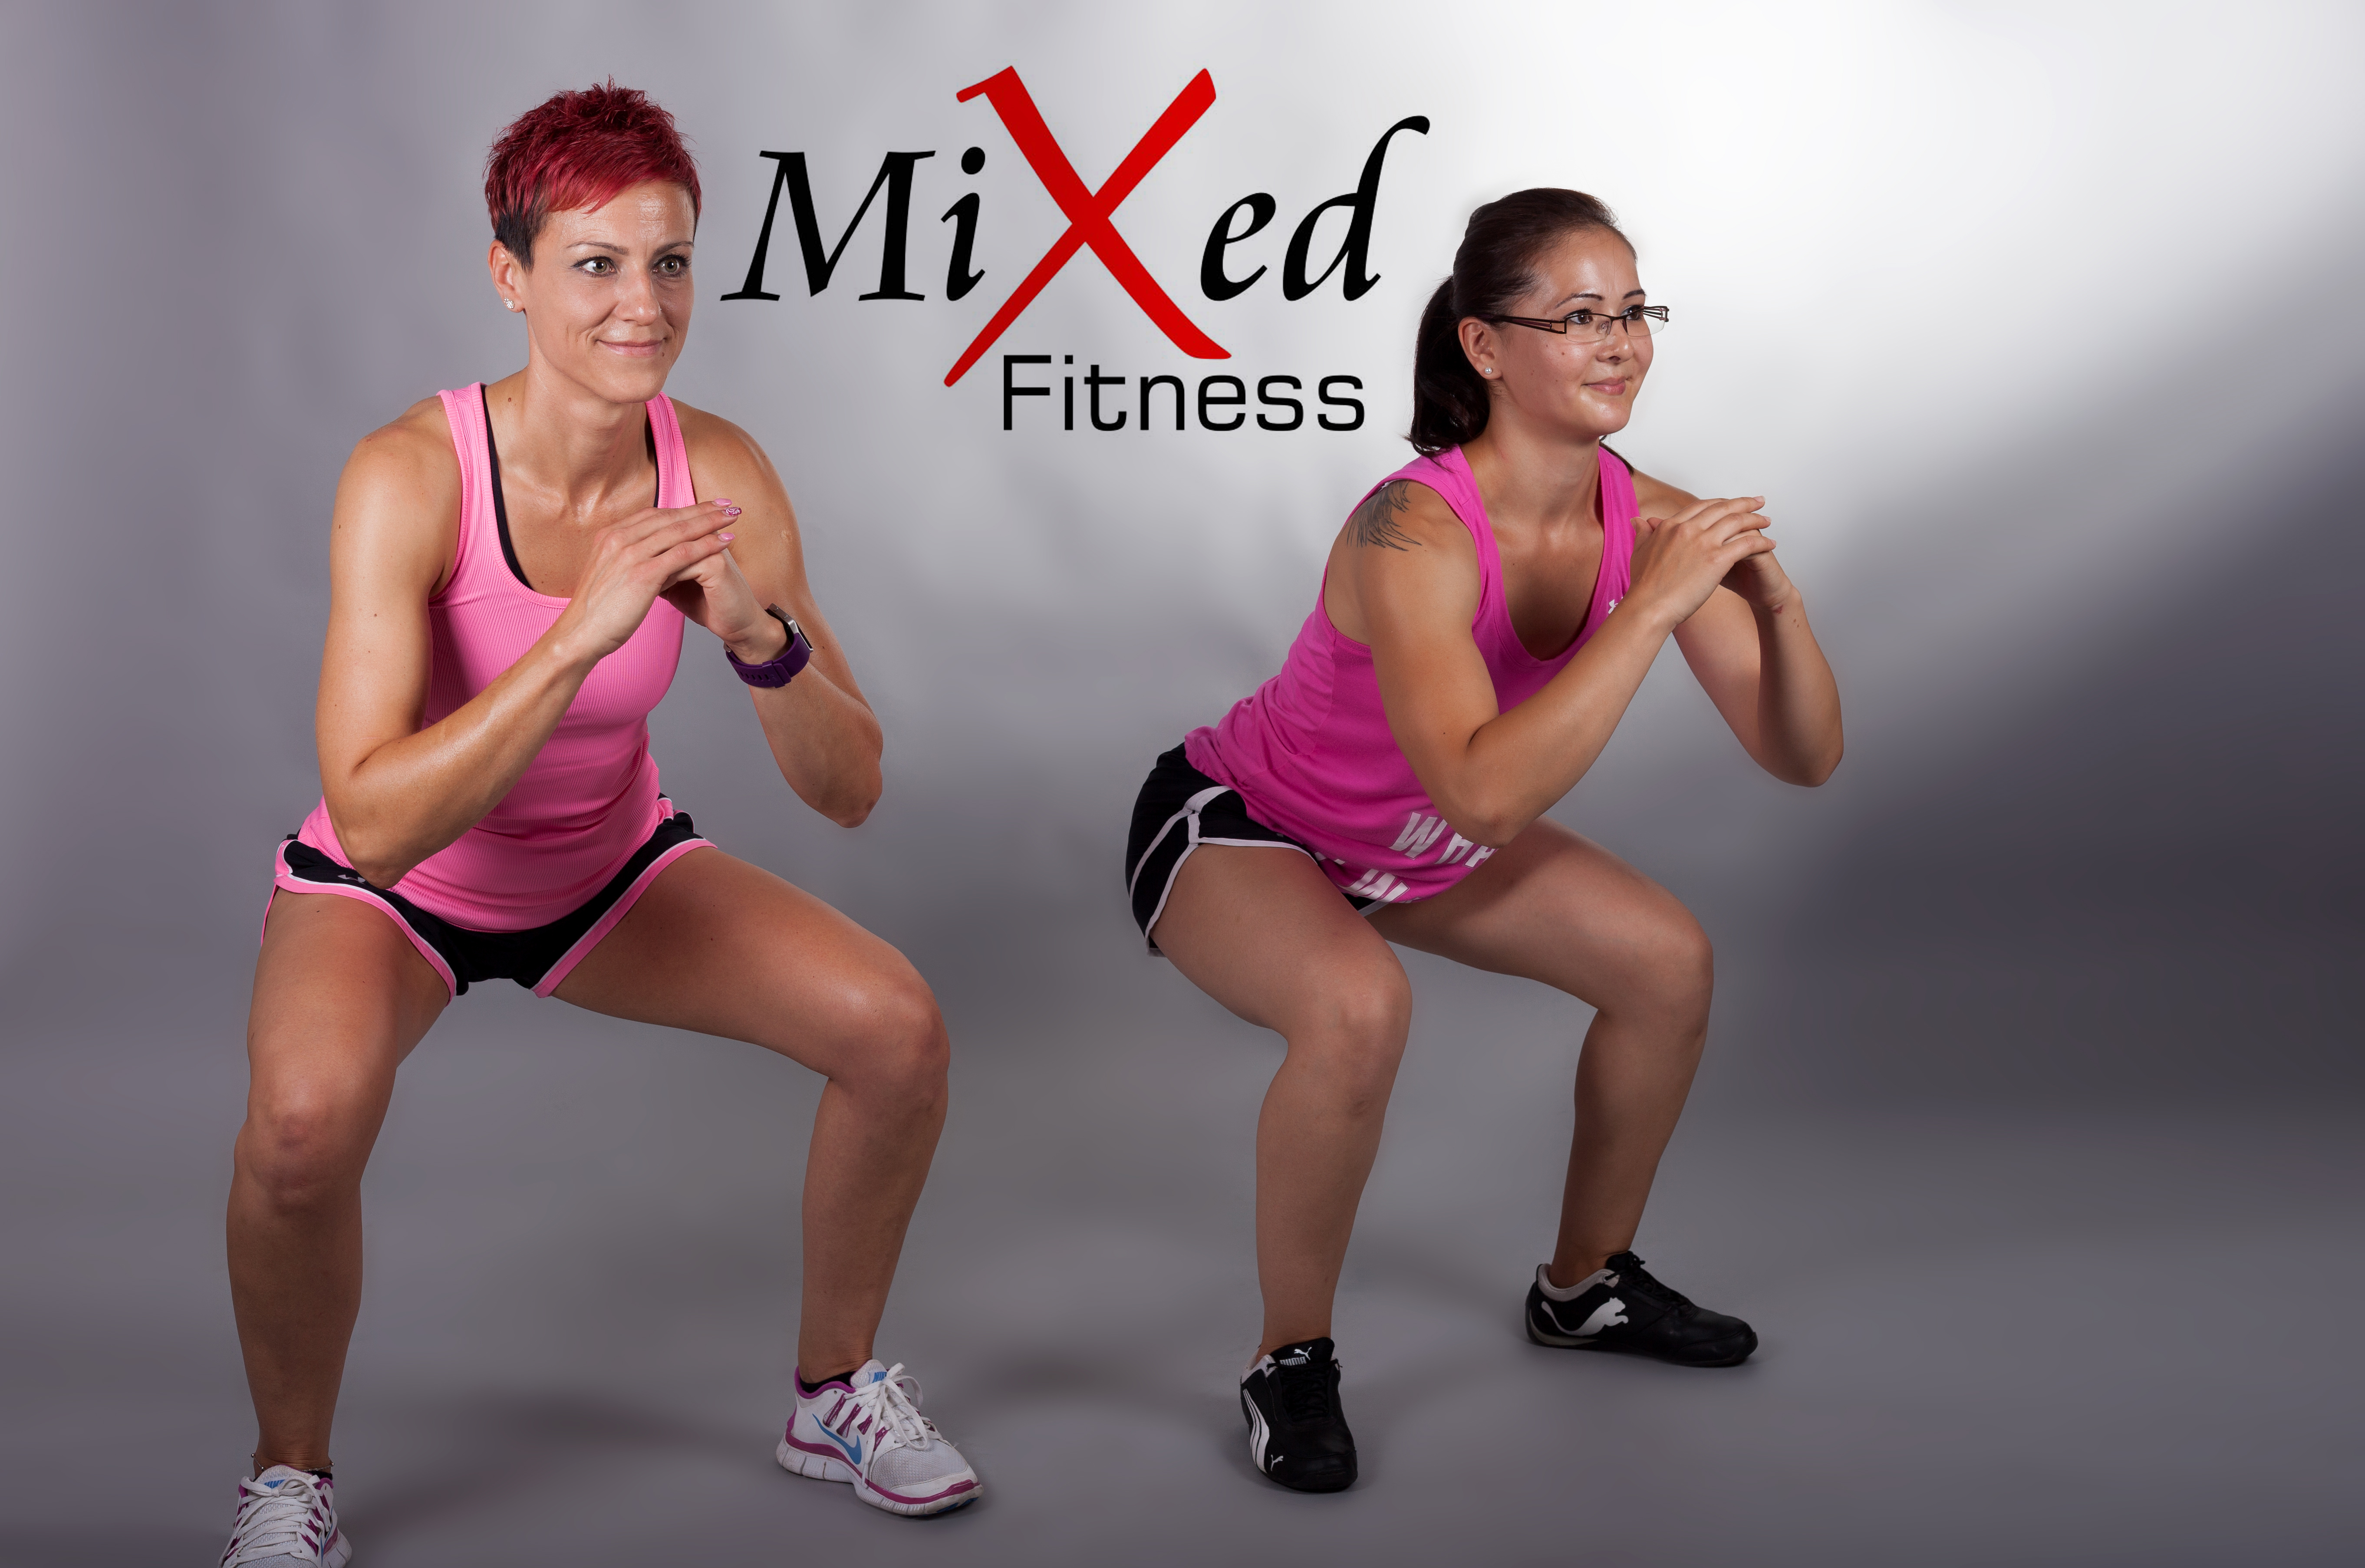 MiXed Fitness